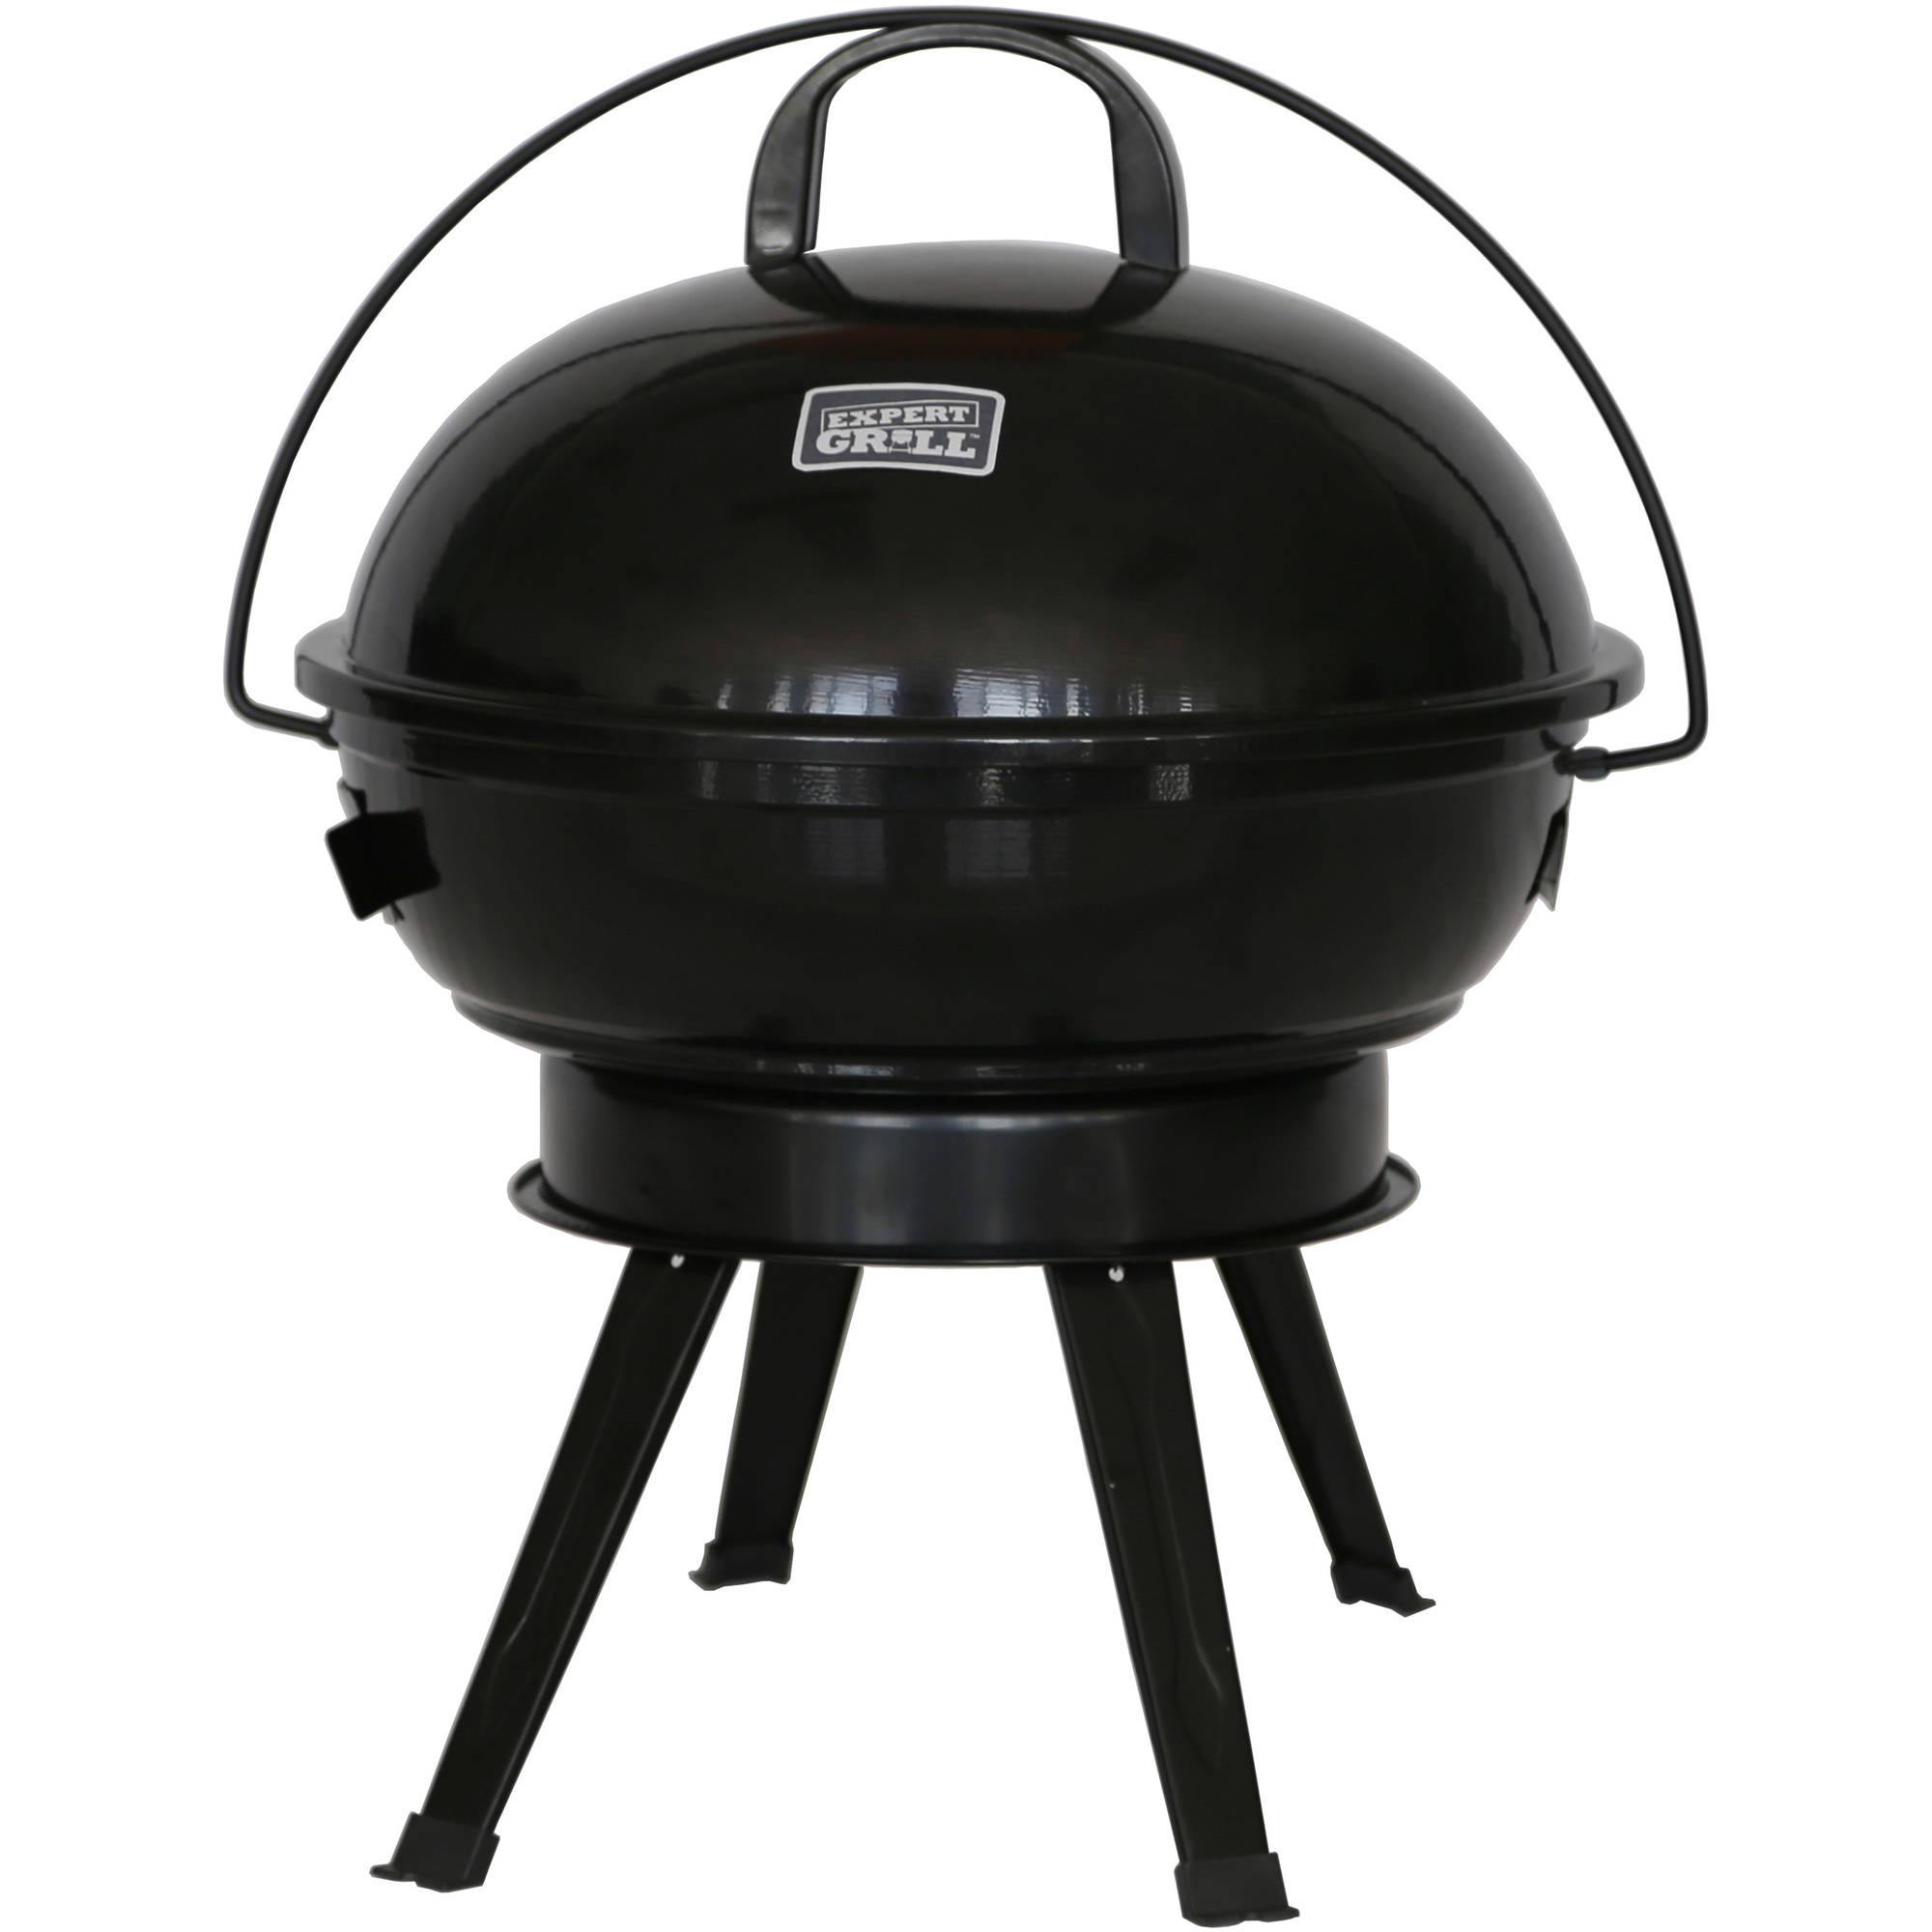 "Expert Grill 14.5"" Dome Charcoal Grill, Black by"